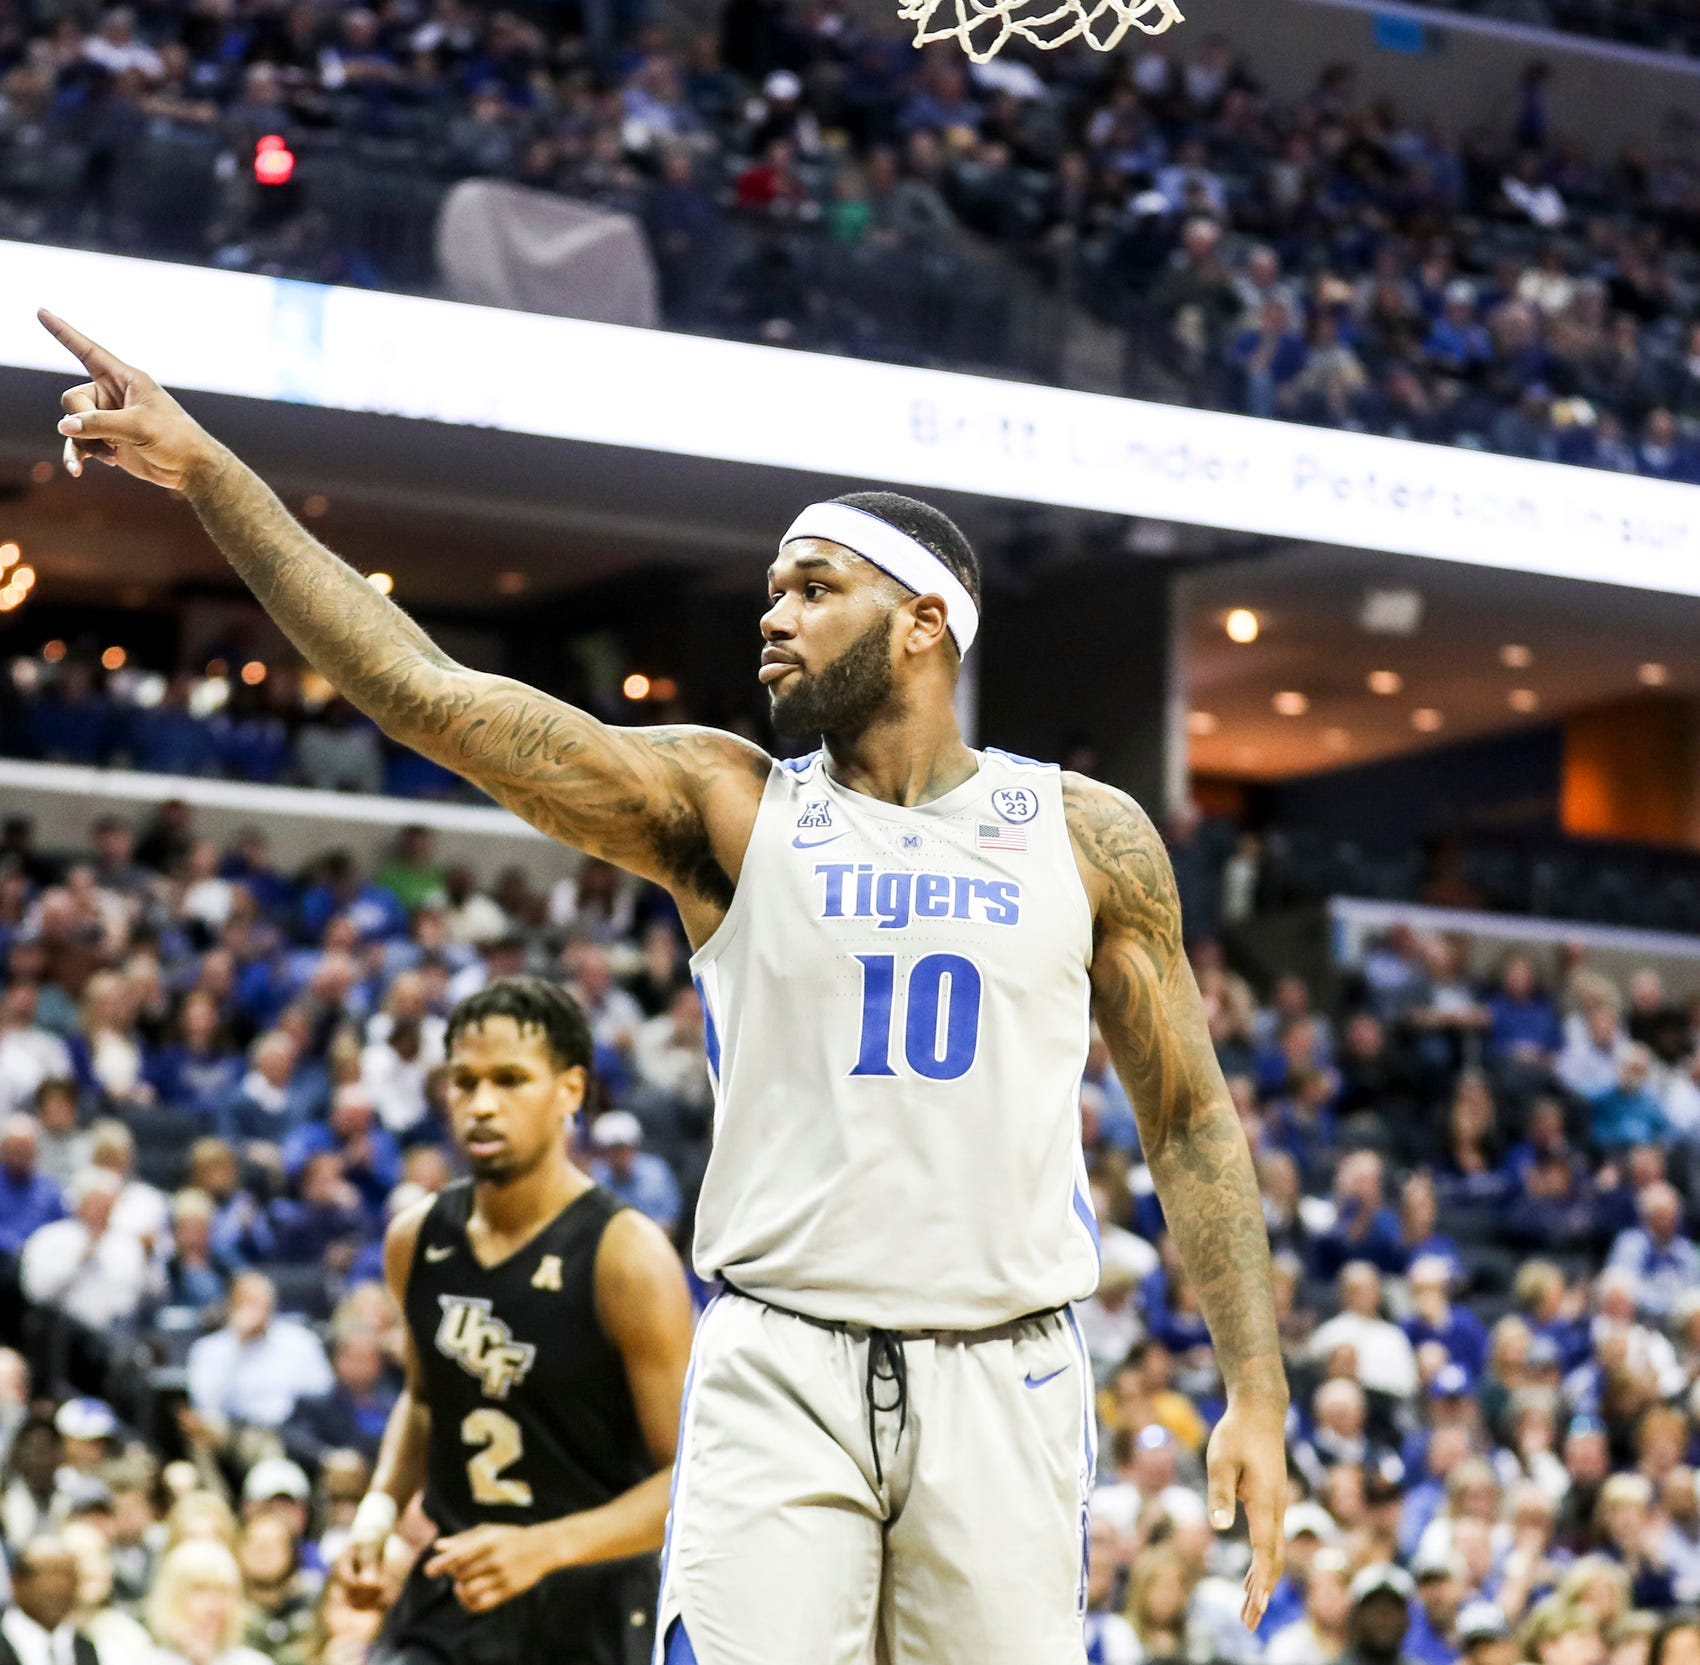 Memphis basketball: Tigers vs. UCF pivotal for AAC Tournament seeding